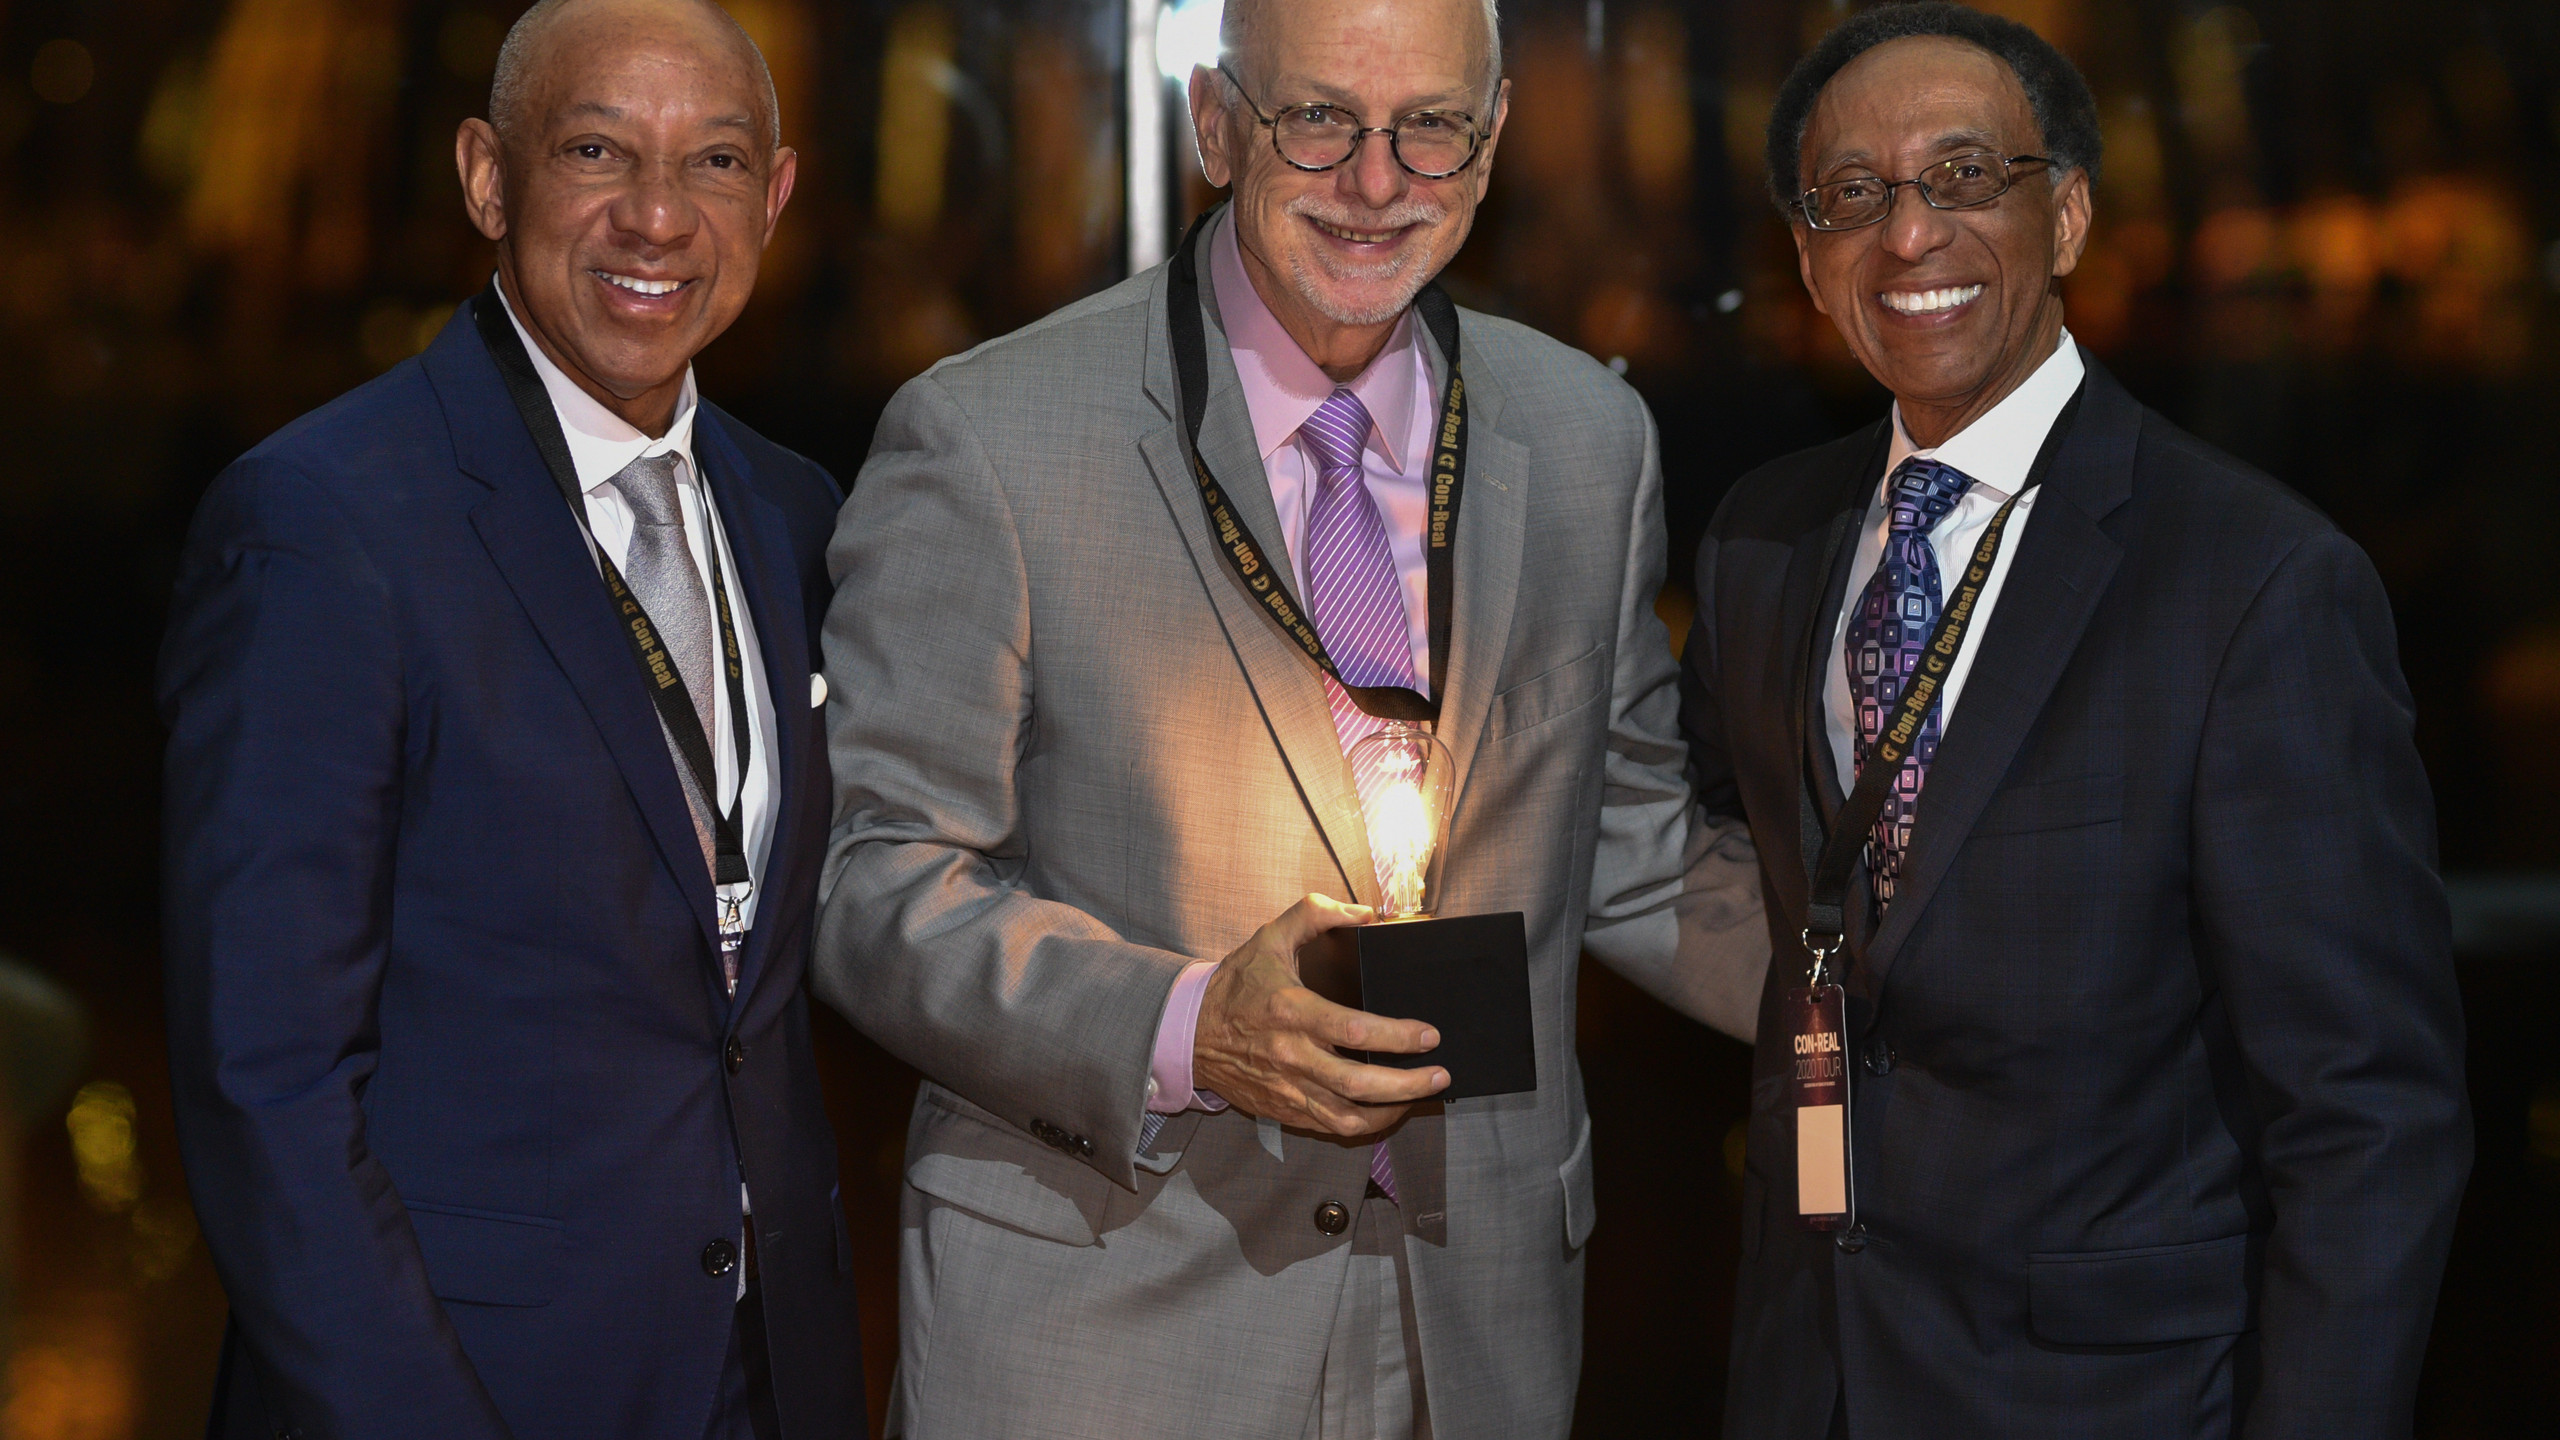 Con-Real founders Gerald and Troy Alley with award recipient